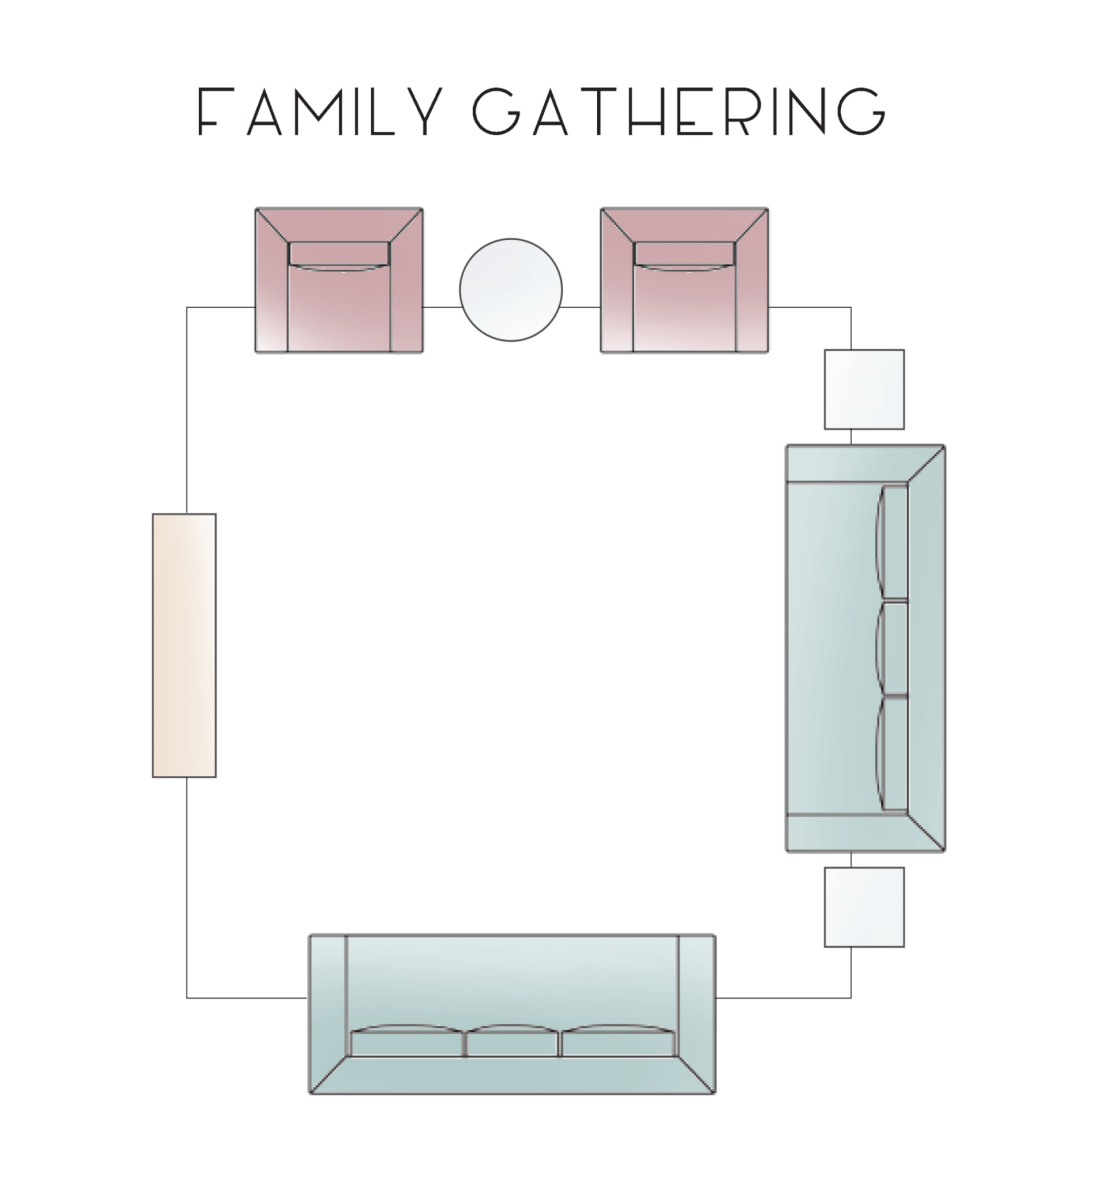 Family Gathering Living Room Layout Option - Catherine French Design